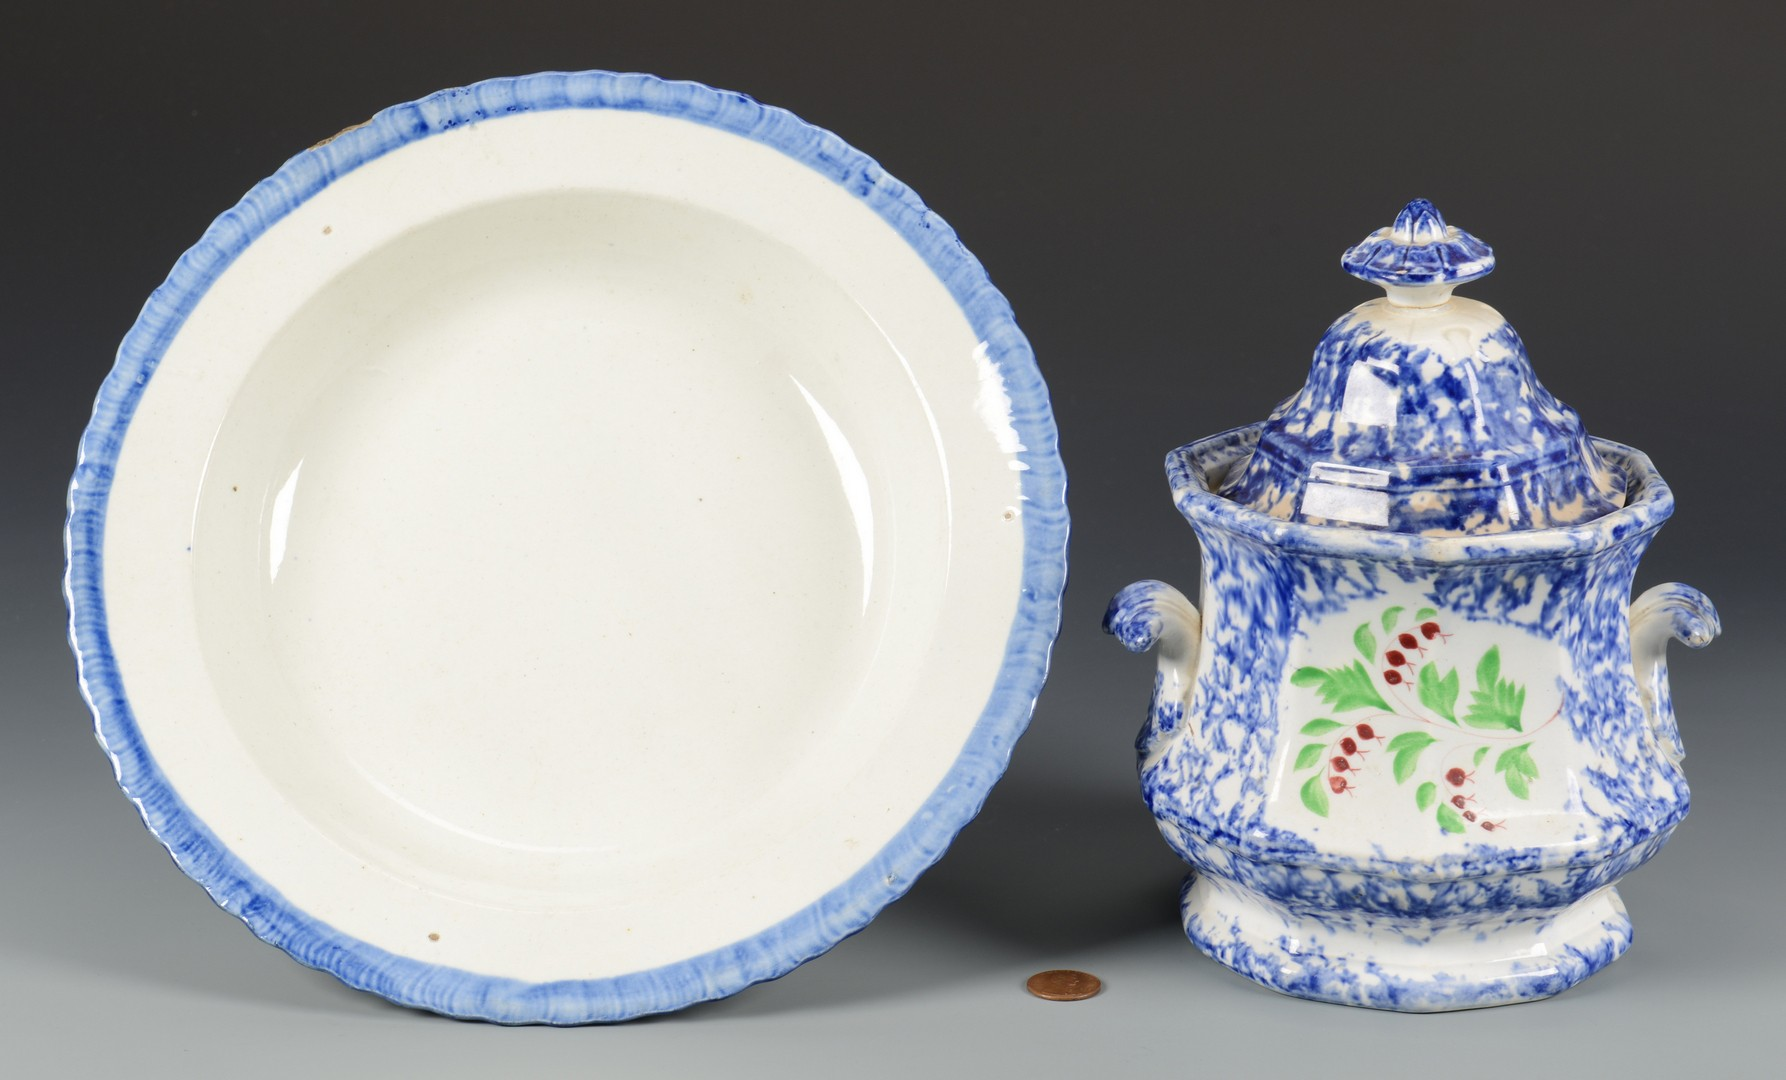 Lot 724: Spatterware Sugar Bowl & Leeds Feather Bowl